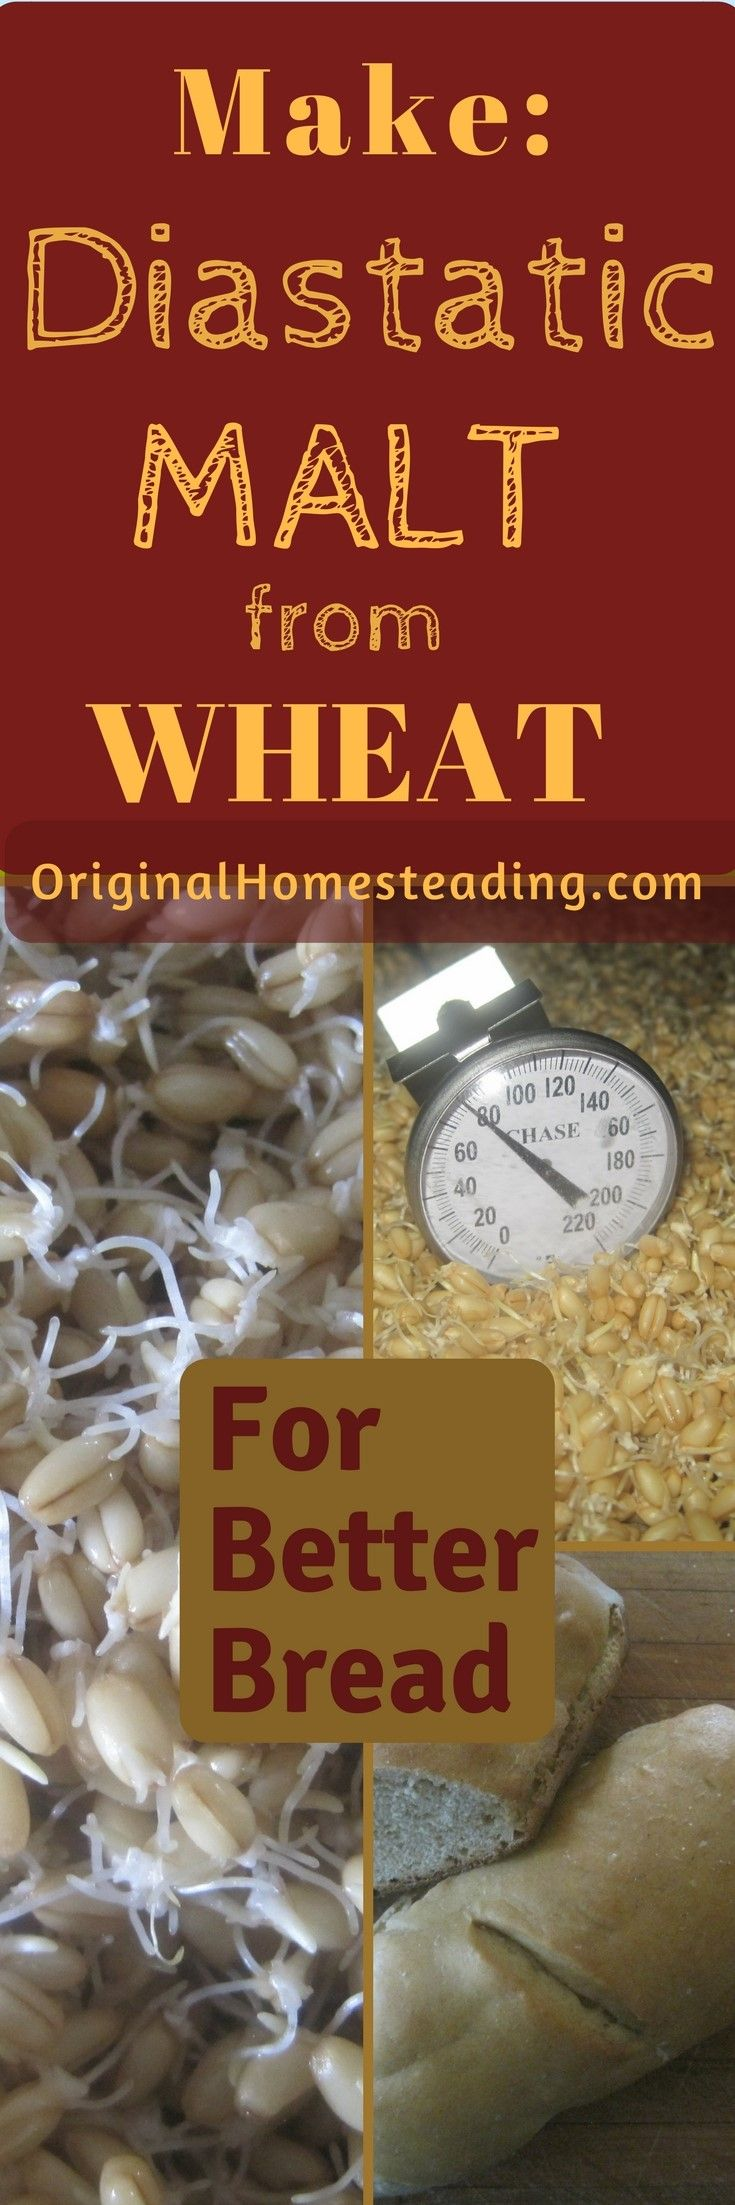 Diastatic Malt aids in Bread Making. It acts like a dough conditioner giving the bread more elasticity, better rising capability and a nice brown crust. Learn How to Make and Use Diastatic Malt.